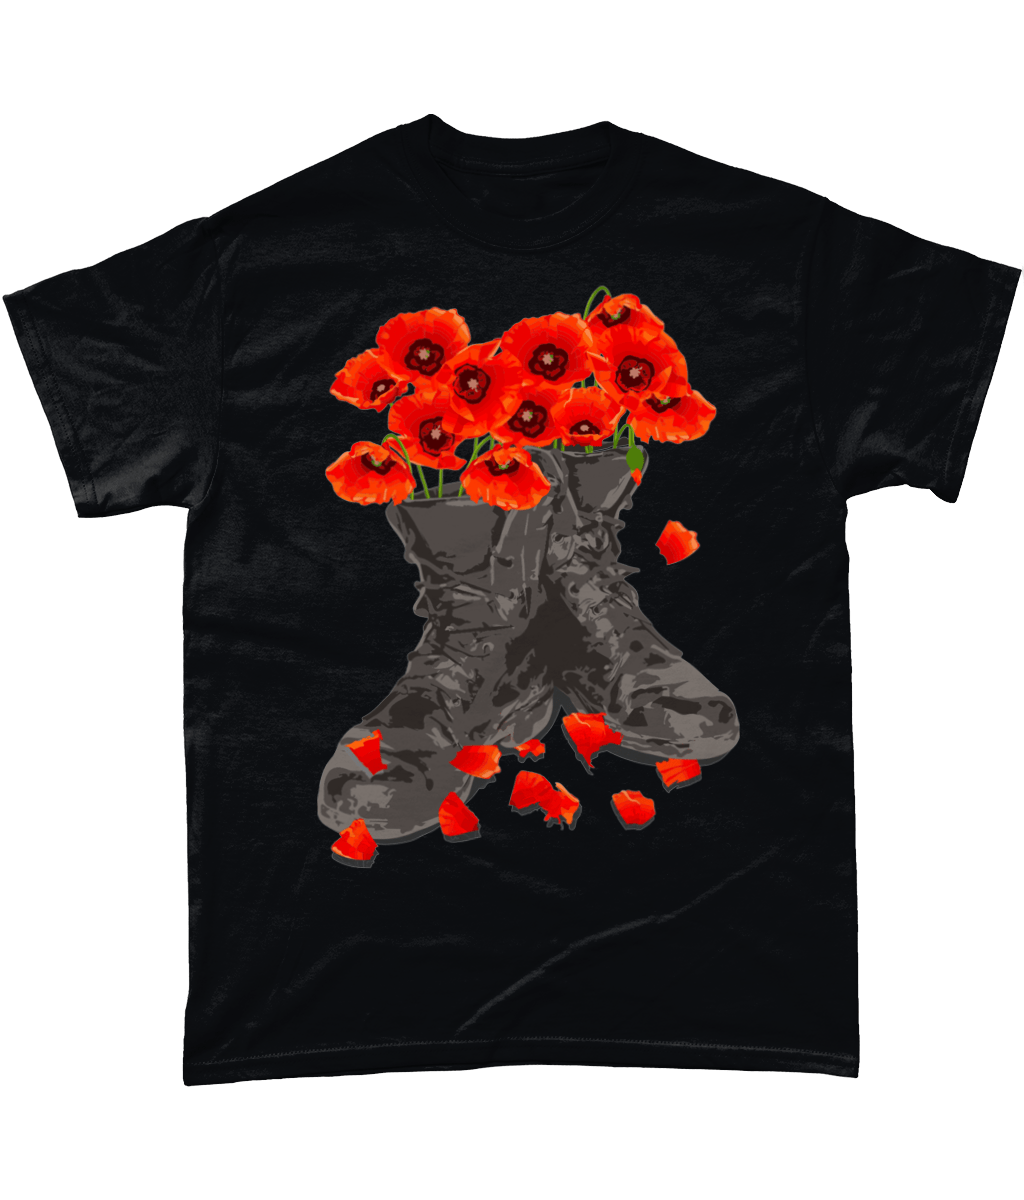 We Will Remember Them T Shirt